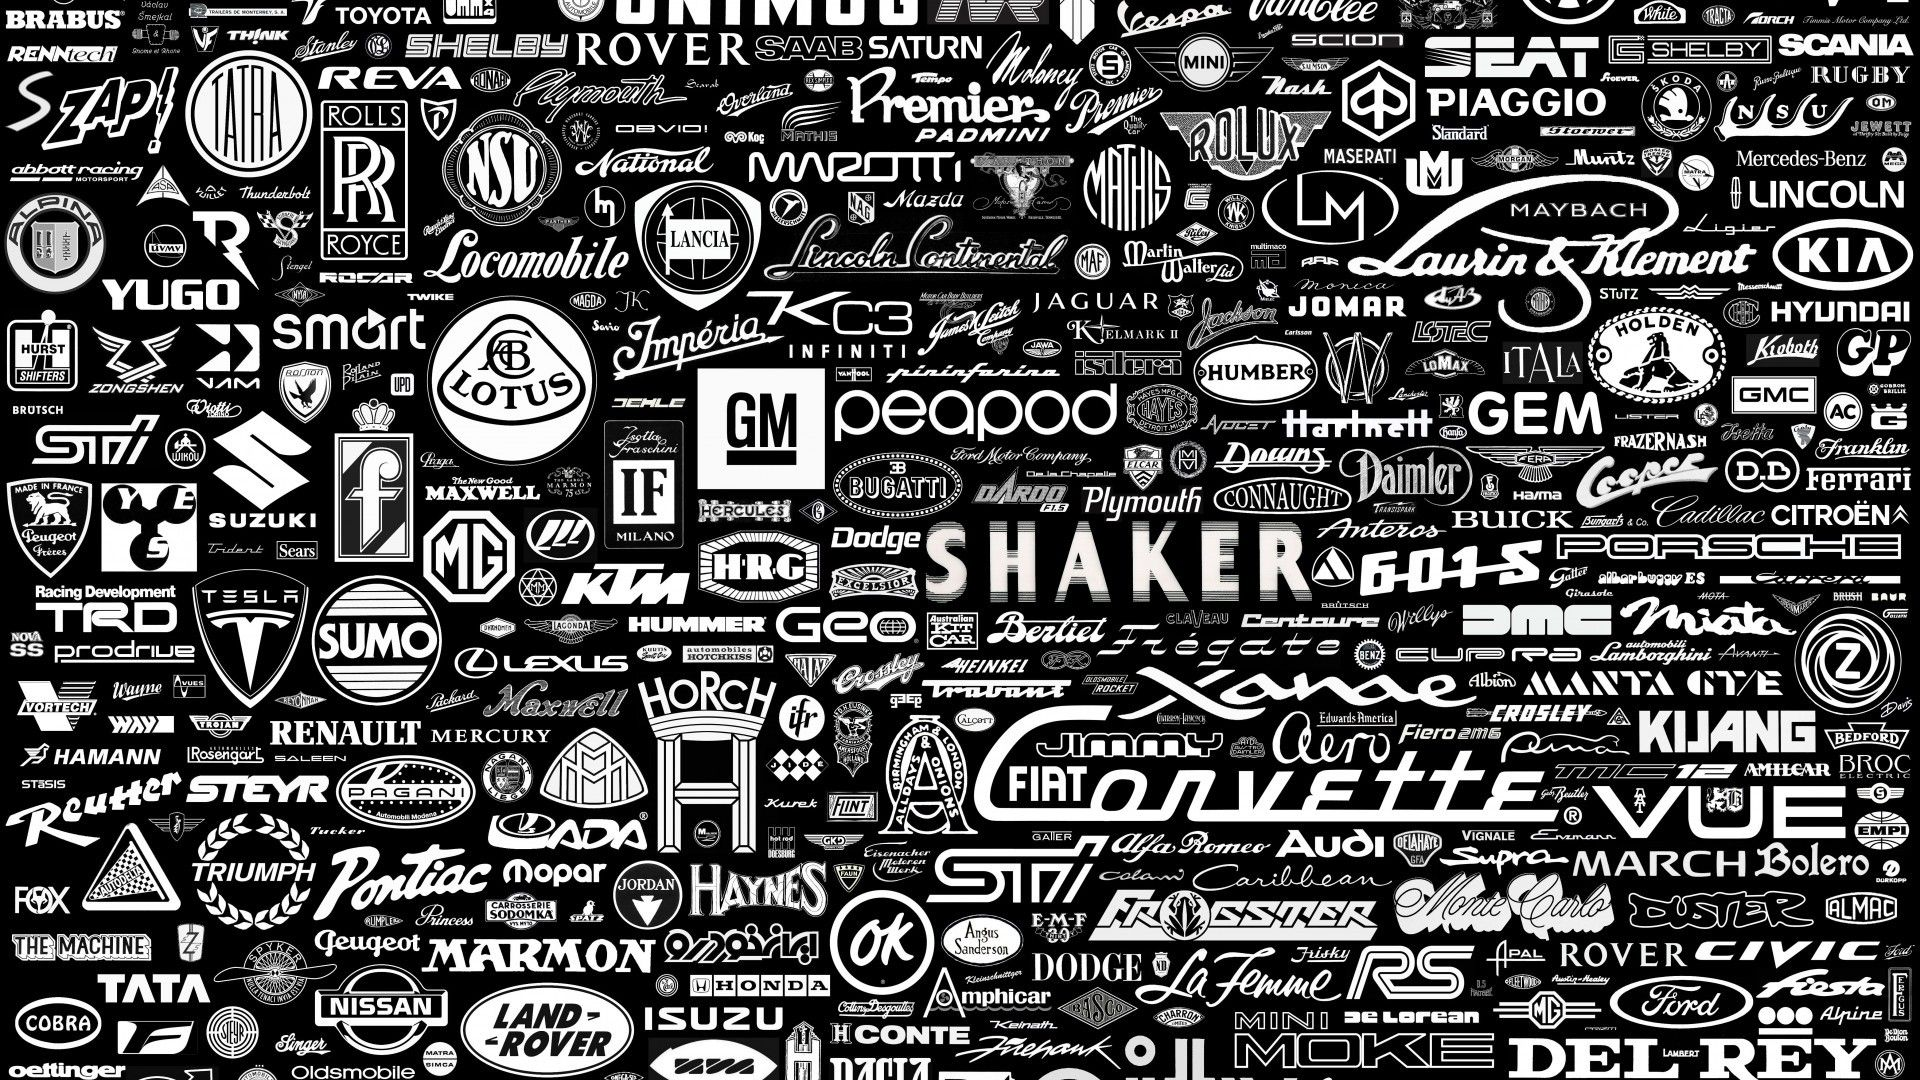 Cars Brands Wallpaper Charting Inspiration Pinterest Car Brands - Car signs and namesenchanting automobile logos picturesin logo software with